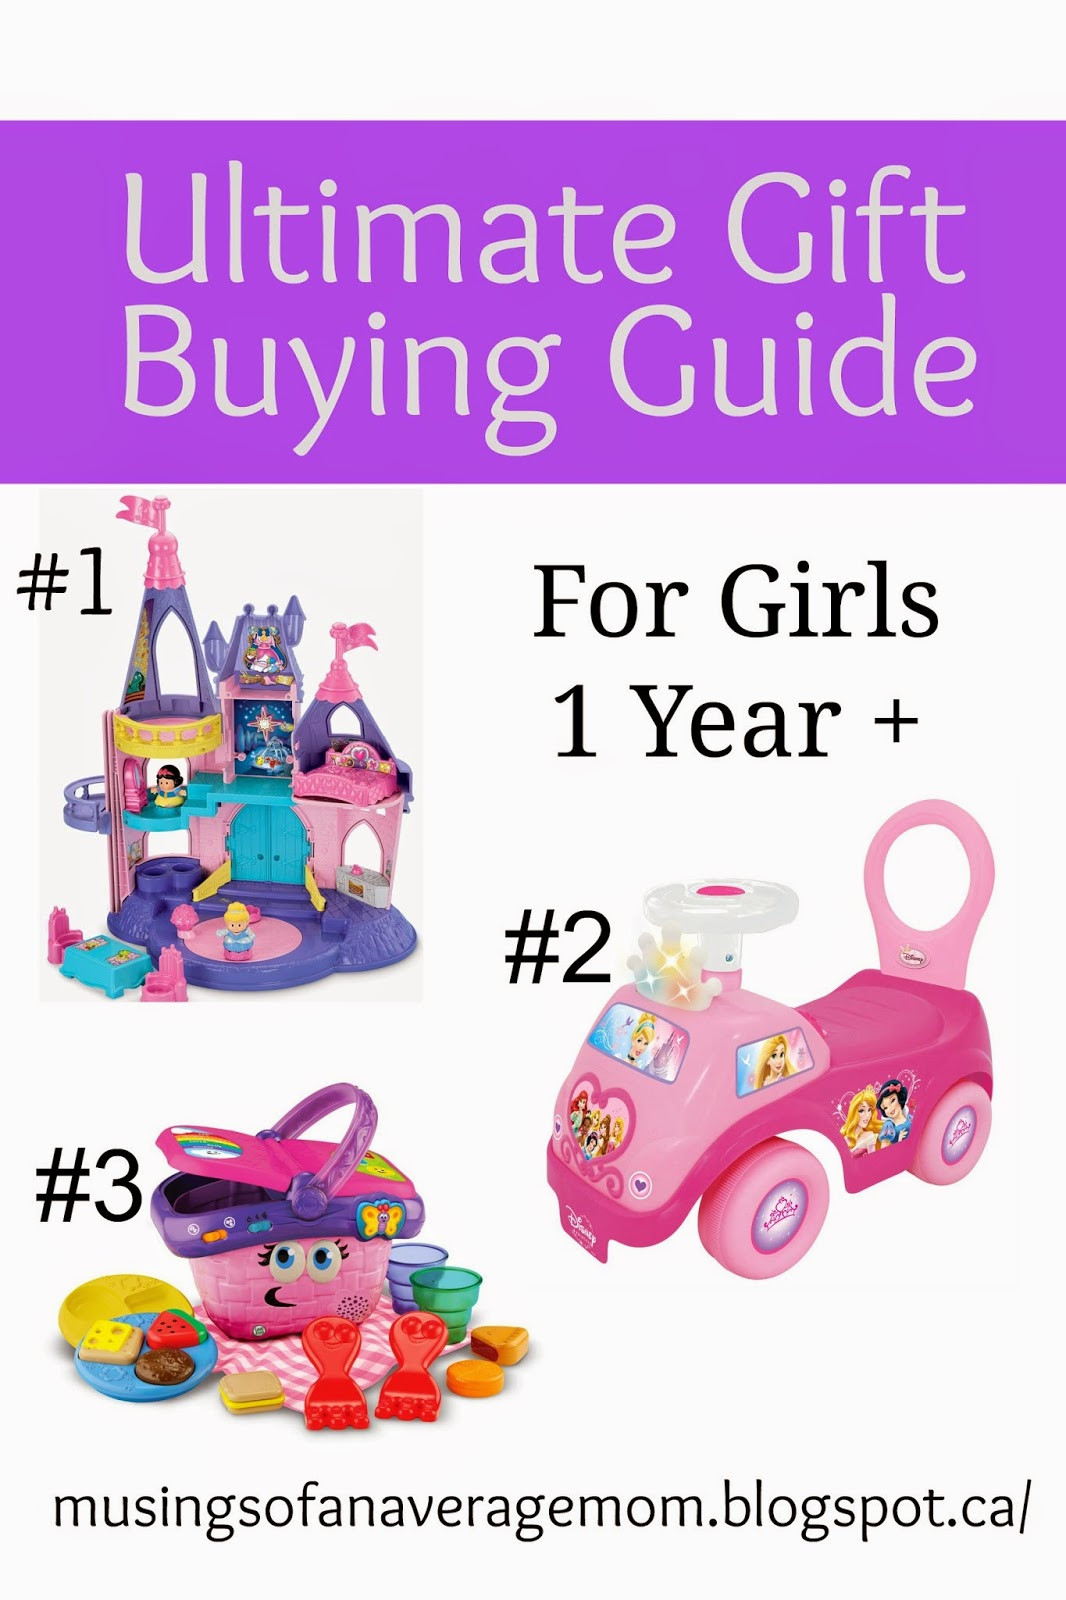 Gift Ideas For Two Year Old Baby Girl  Musings of an Average Mom Ultimate Gift Buying Guide e